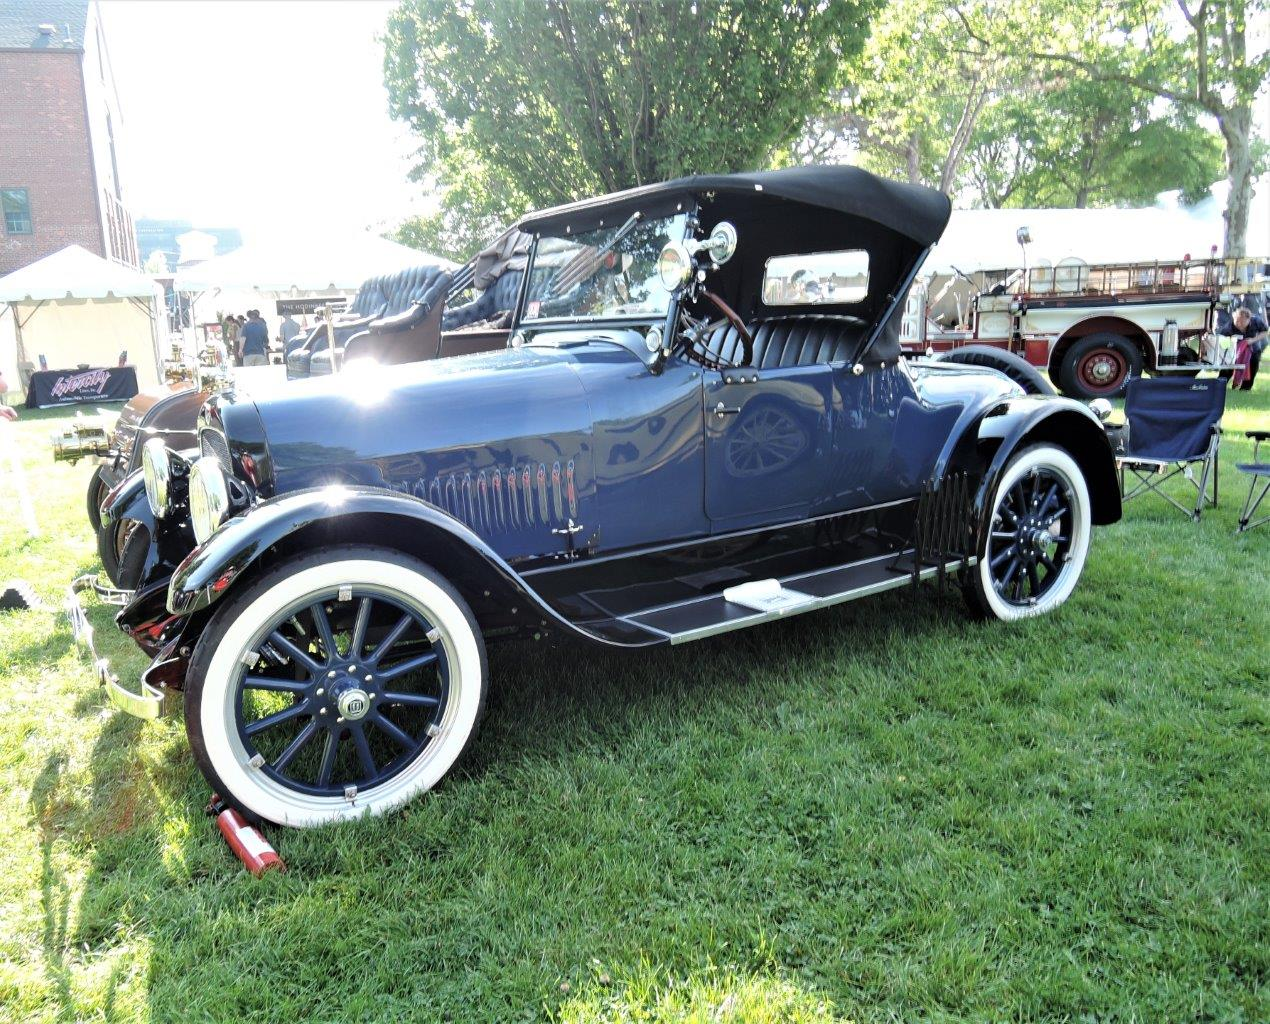 blue 1922 Studebaker Special Six Roadster - 2018 Greenwich Concours Americana